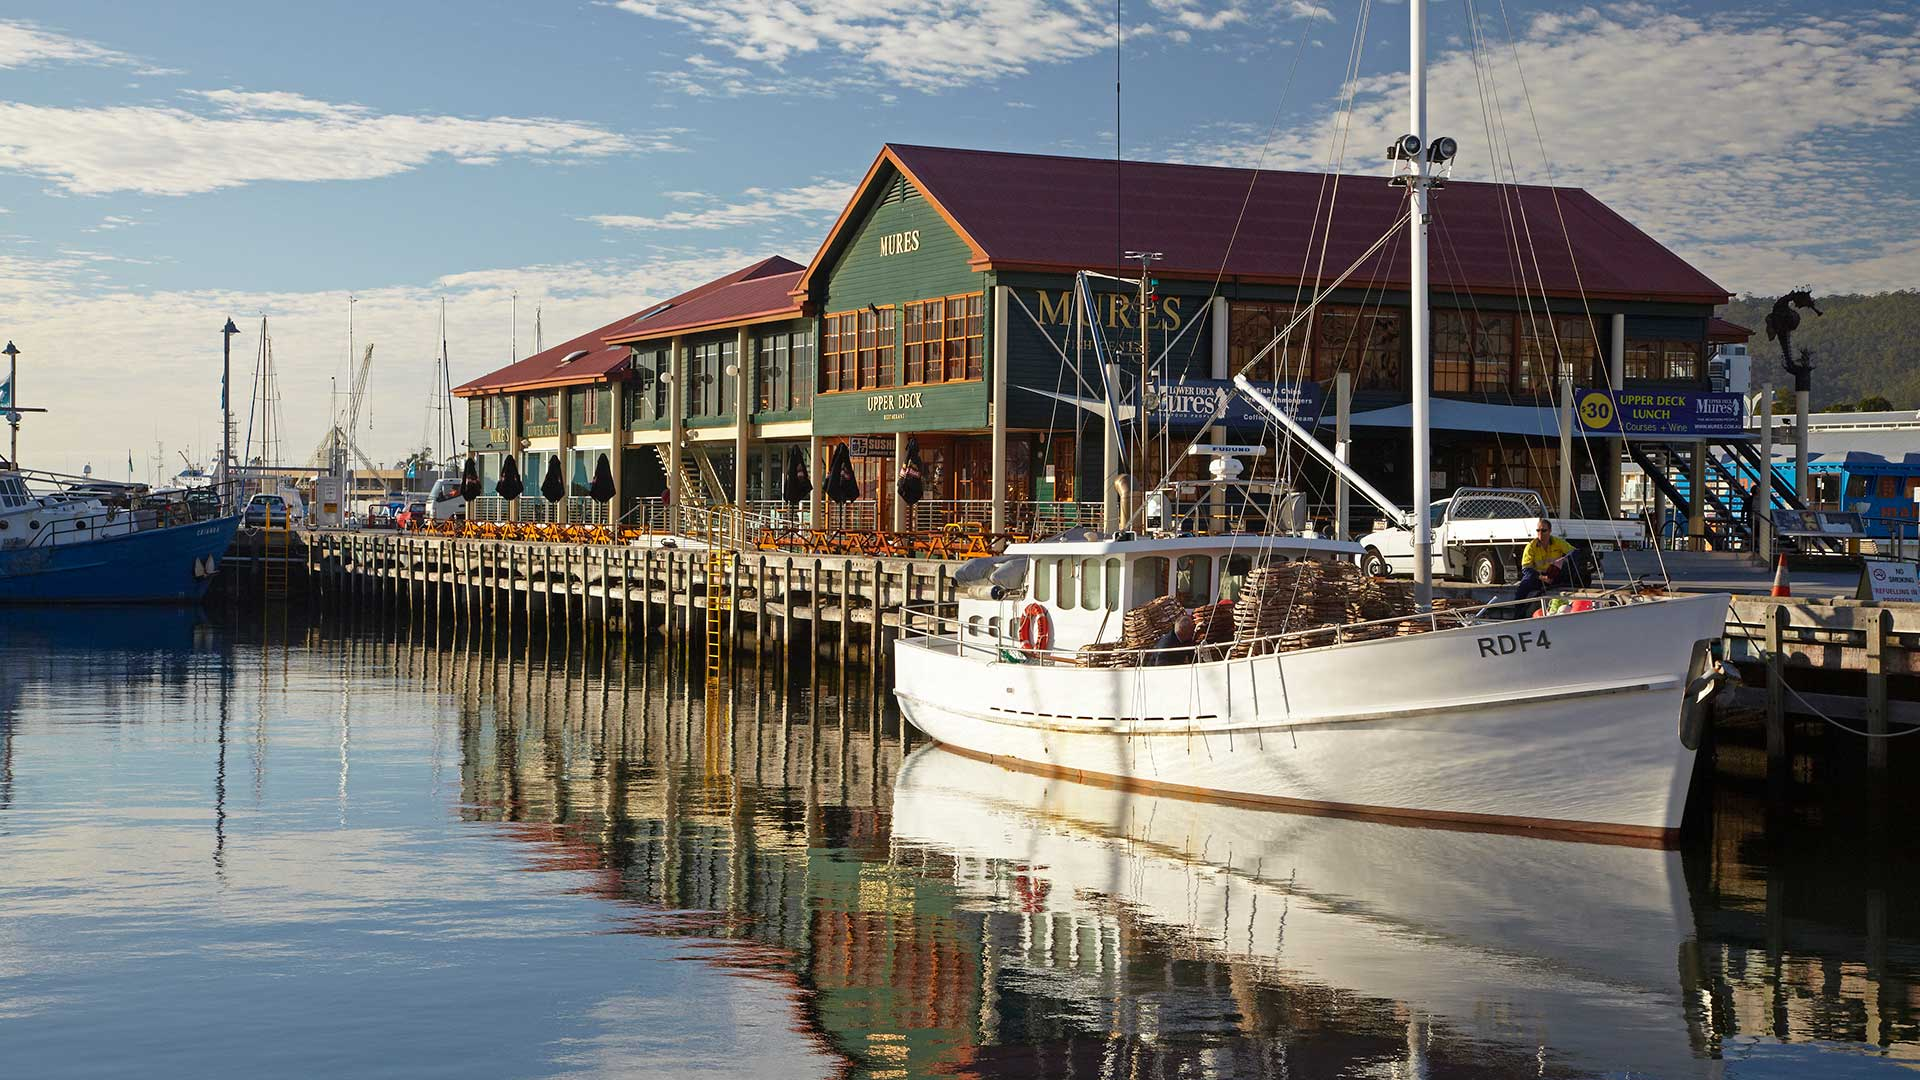 Fishing Boats and Mures Seafood Restaurant, Reflected in Victoria Dock, Hobart, Tasmania, Australia